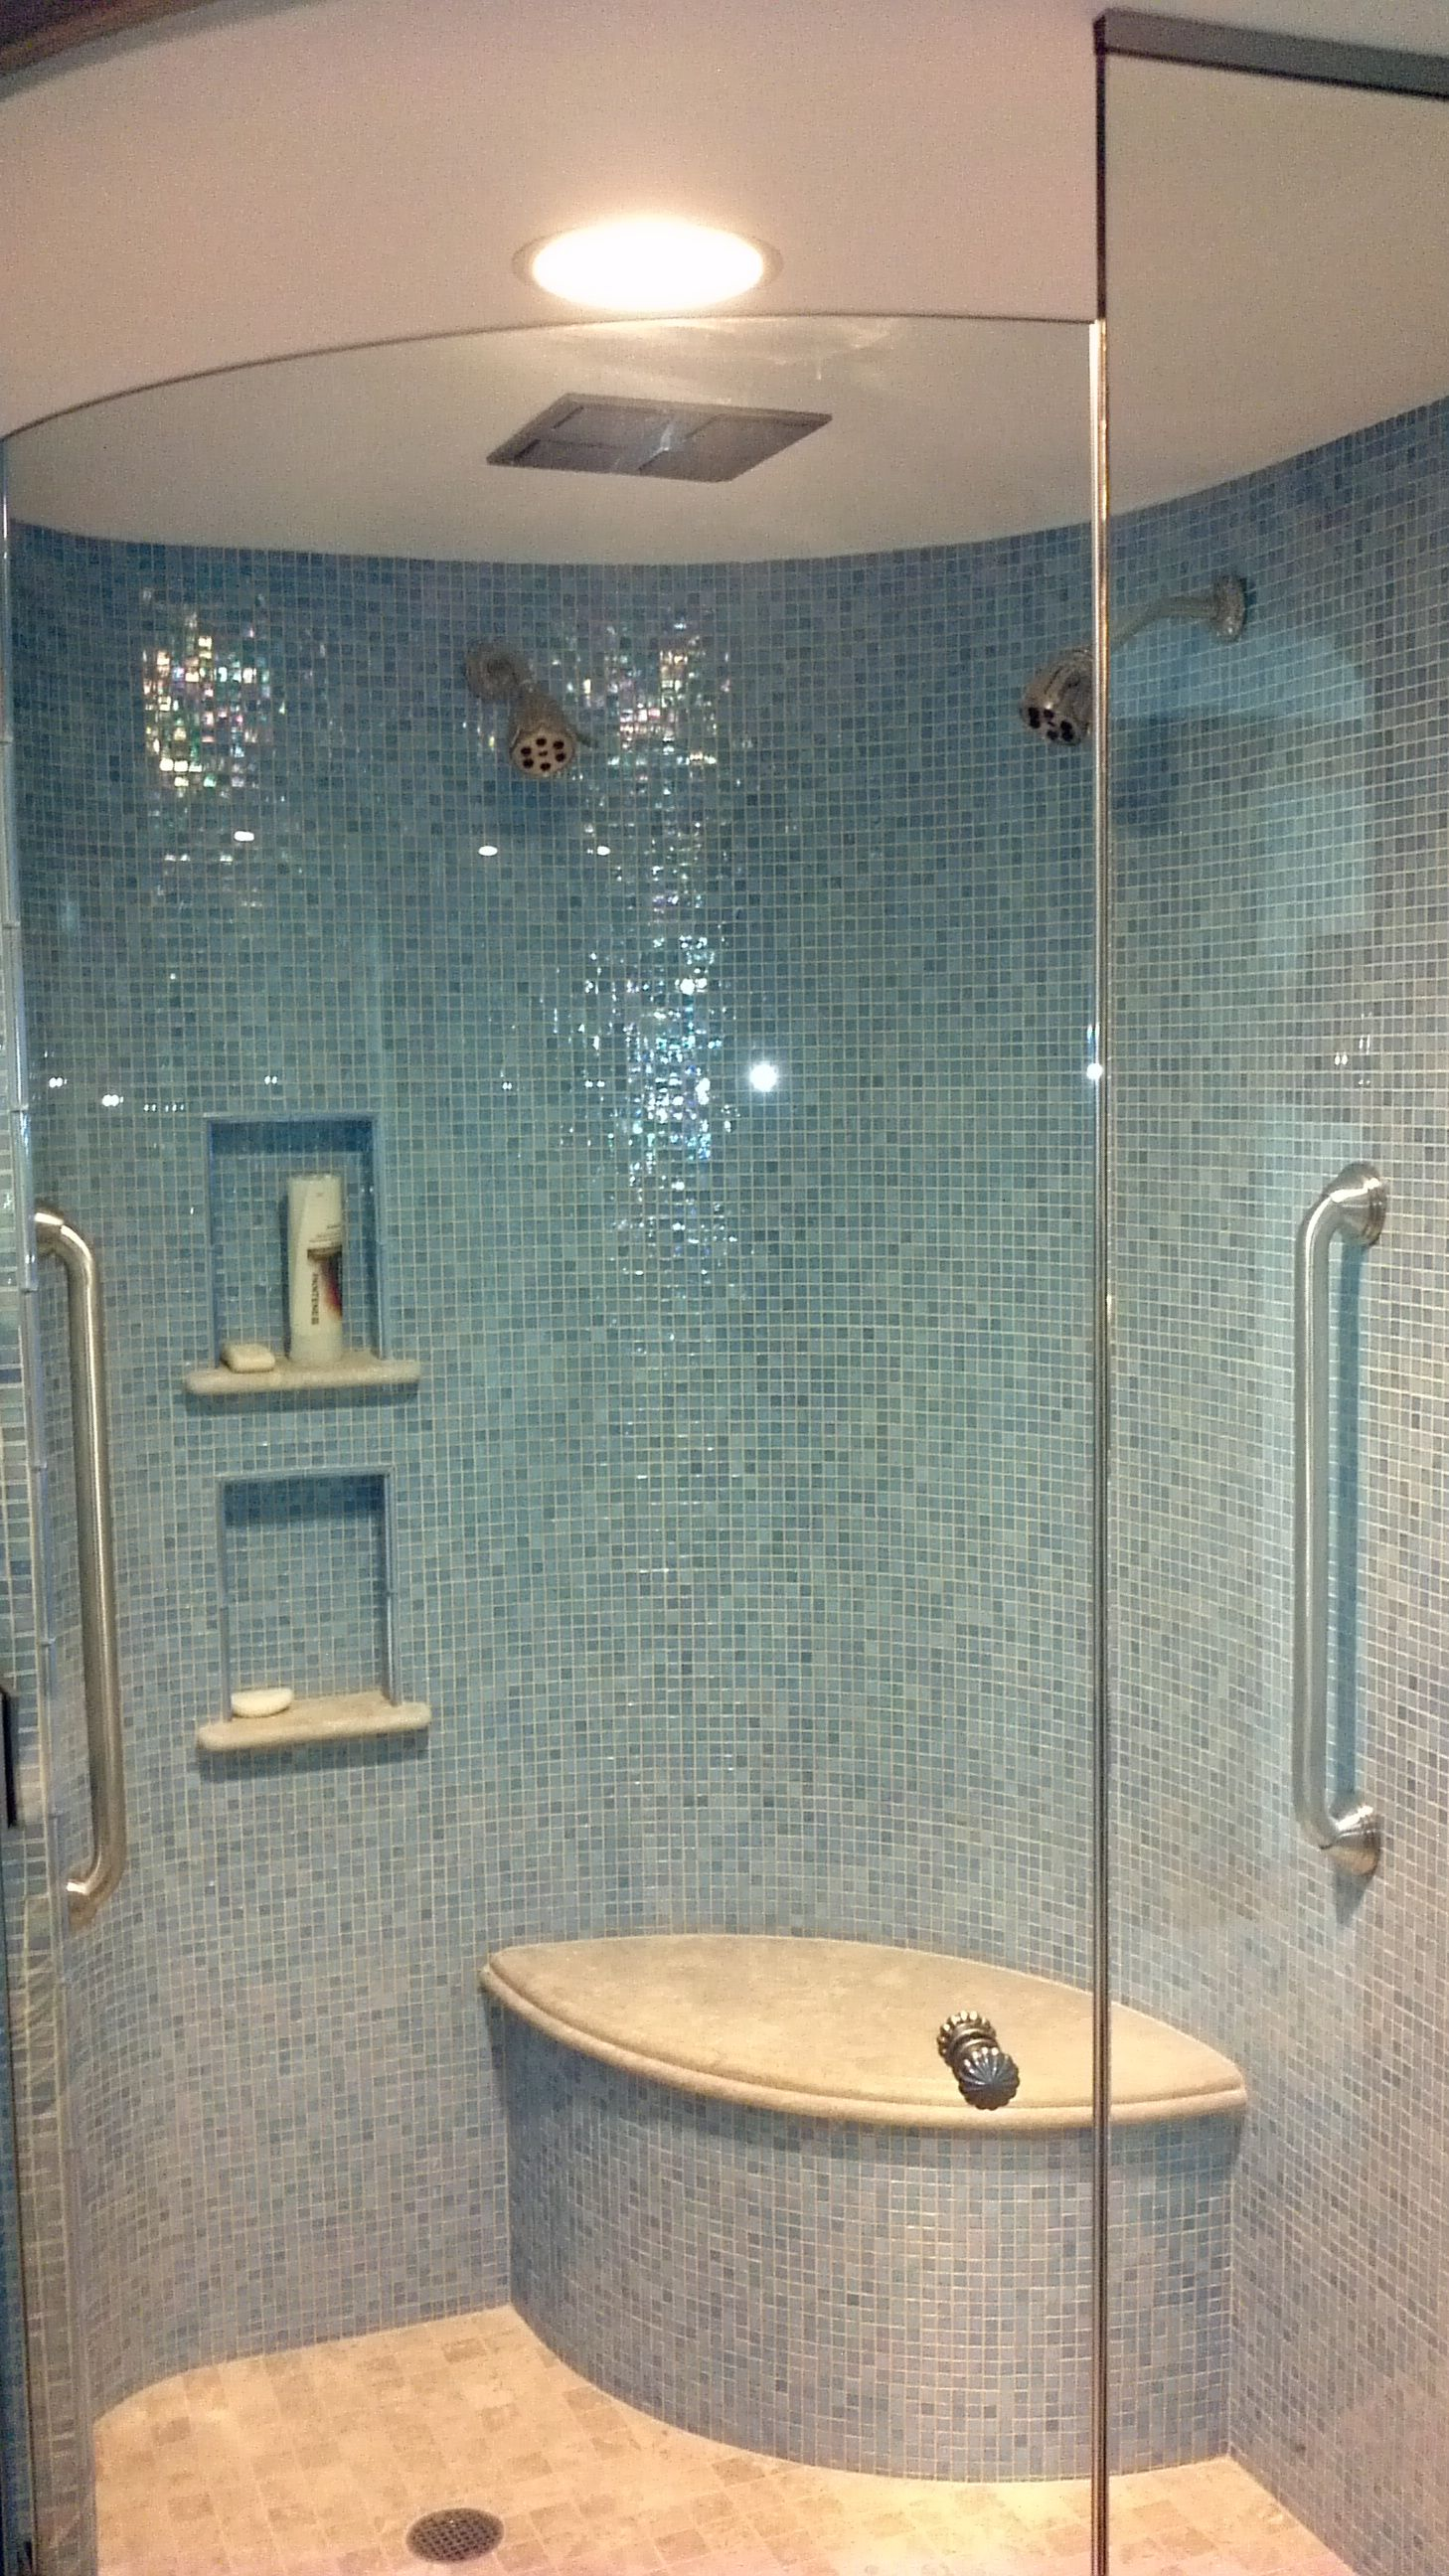 Iridescent Blue Glass Tile Shimmers On Curved Shower Walls! Bathroom ... Part 82